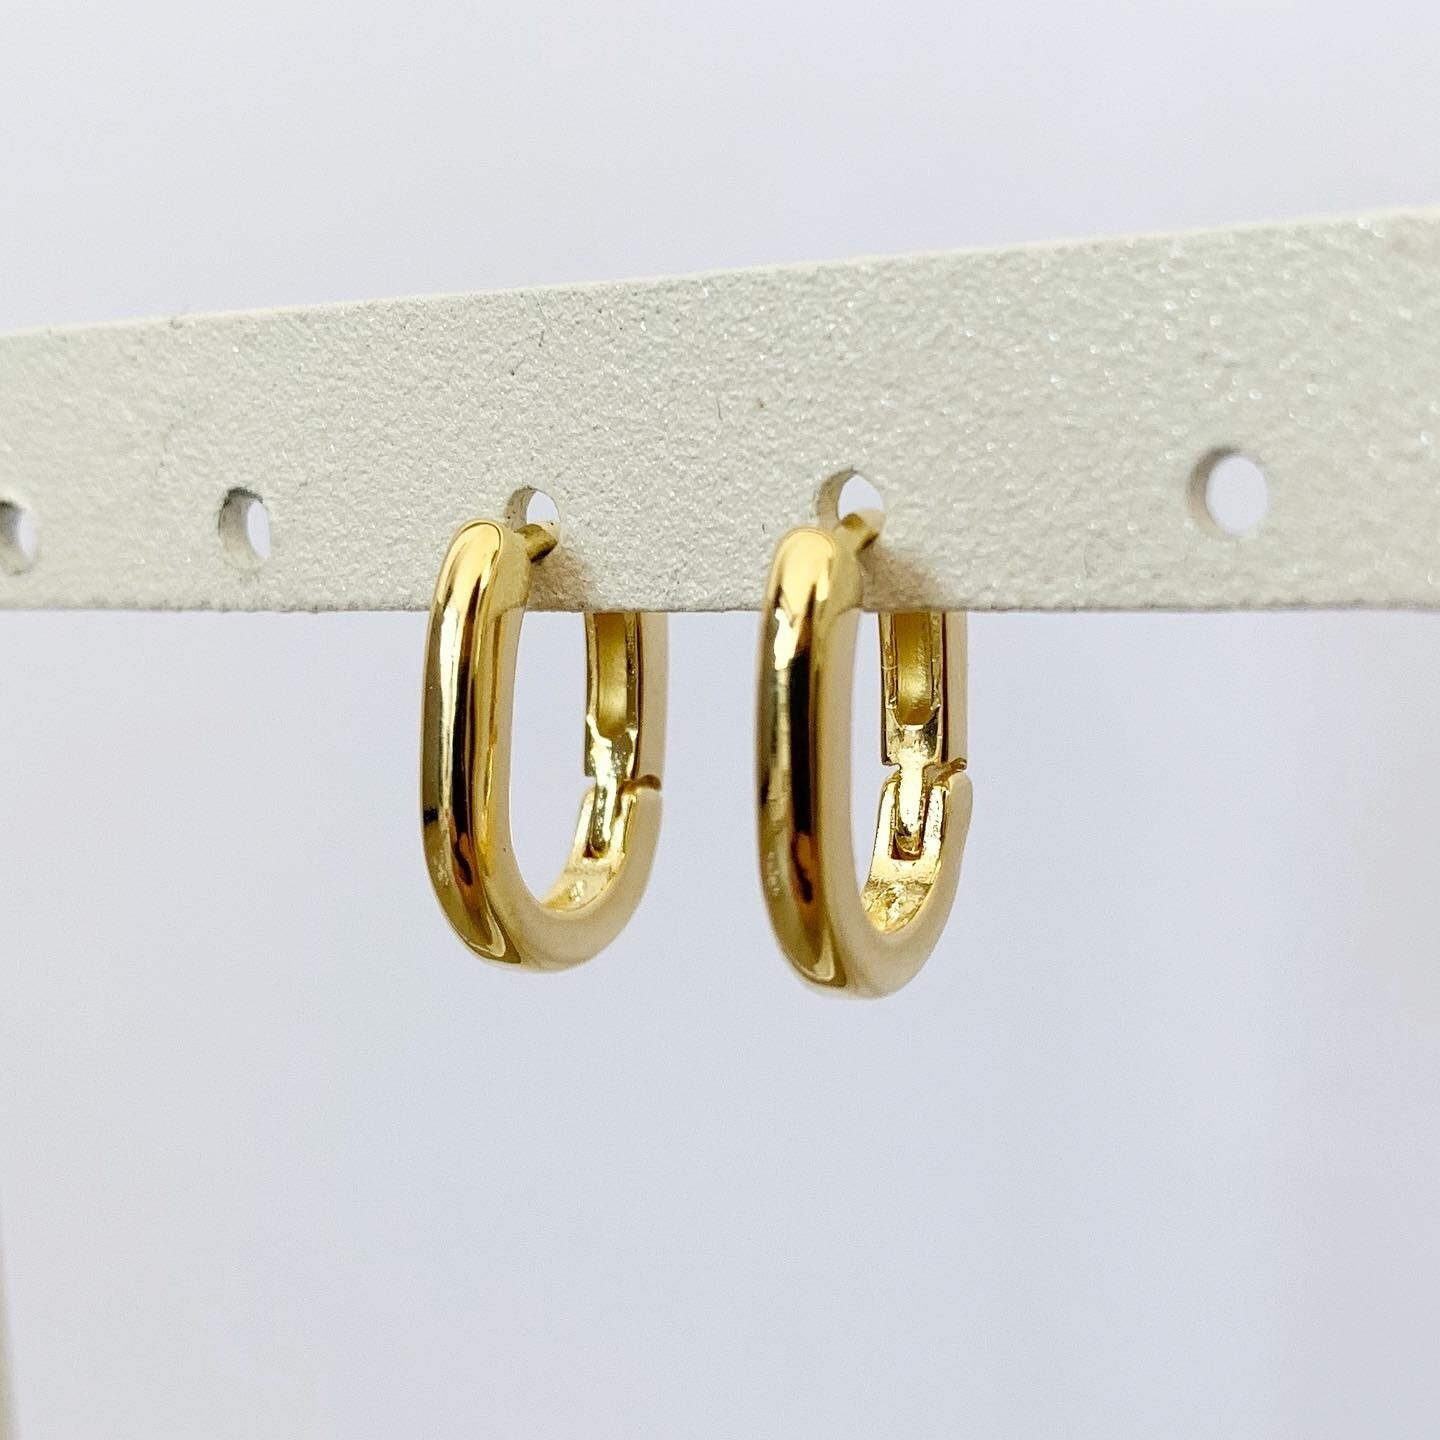 Minimalistische oorringetjes gold plated 15 mm